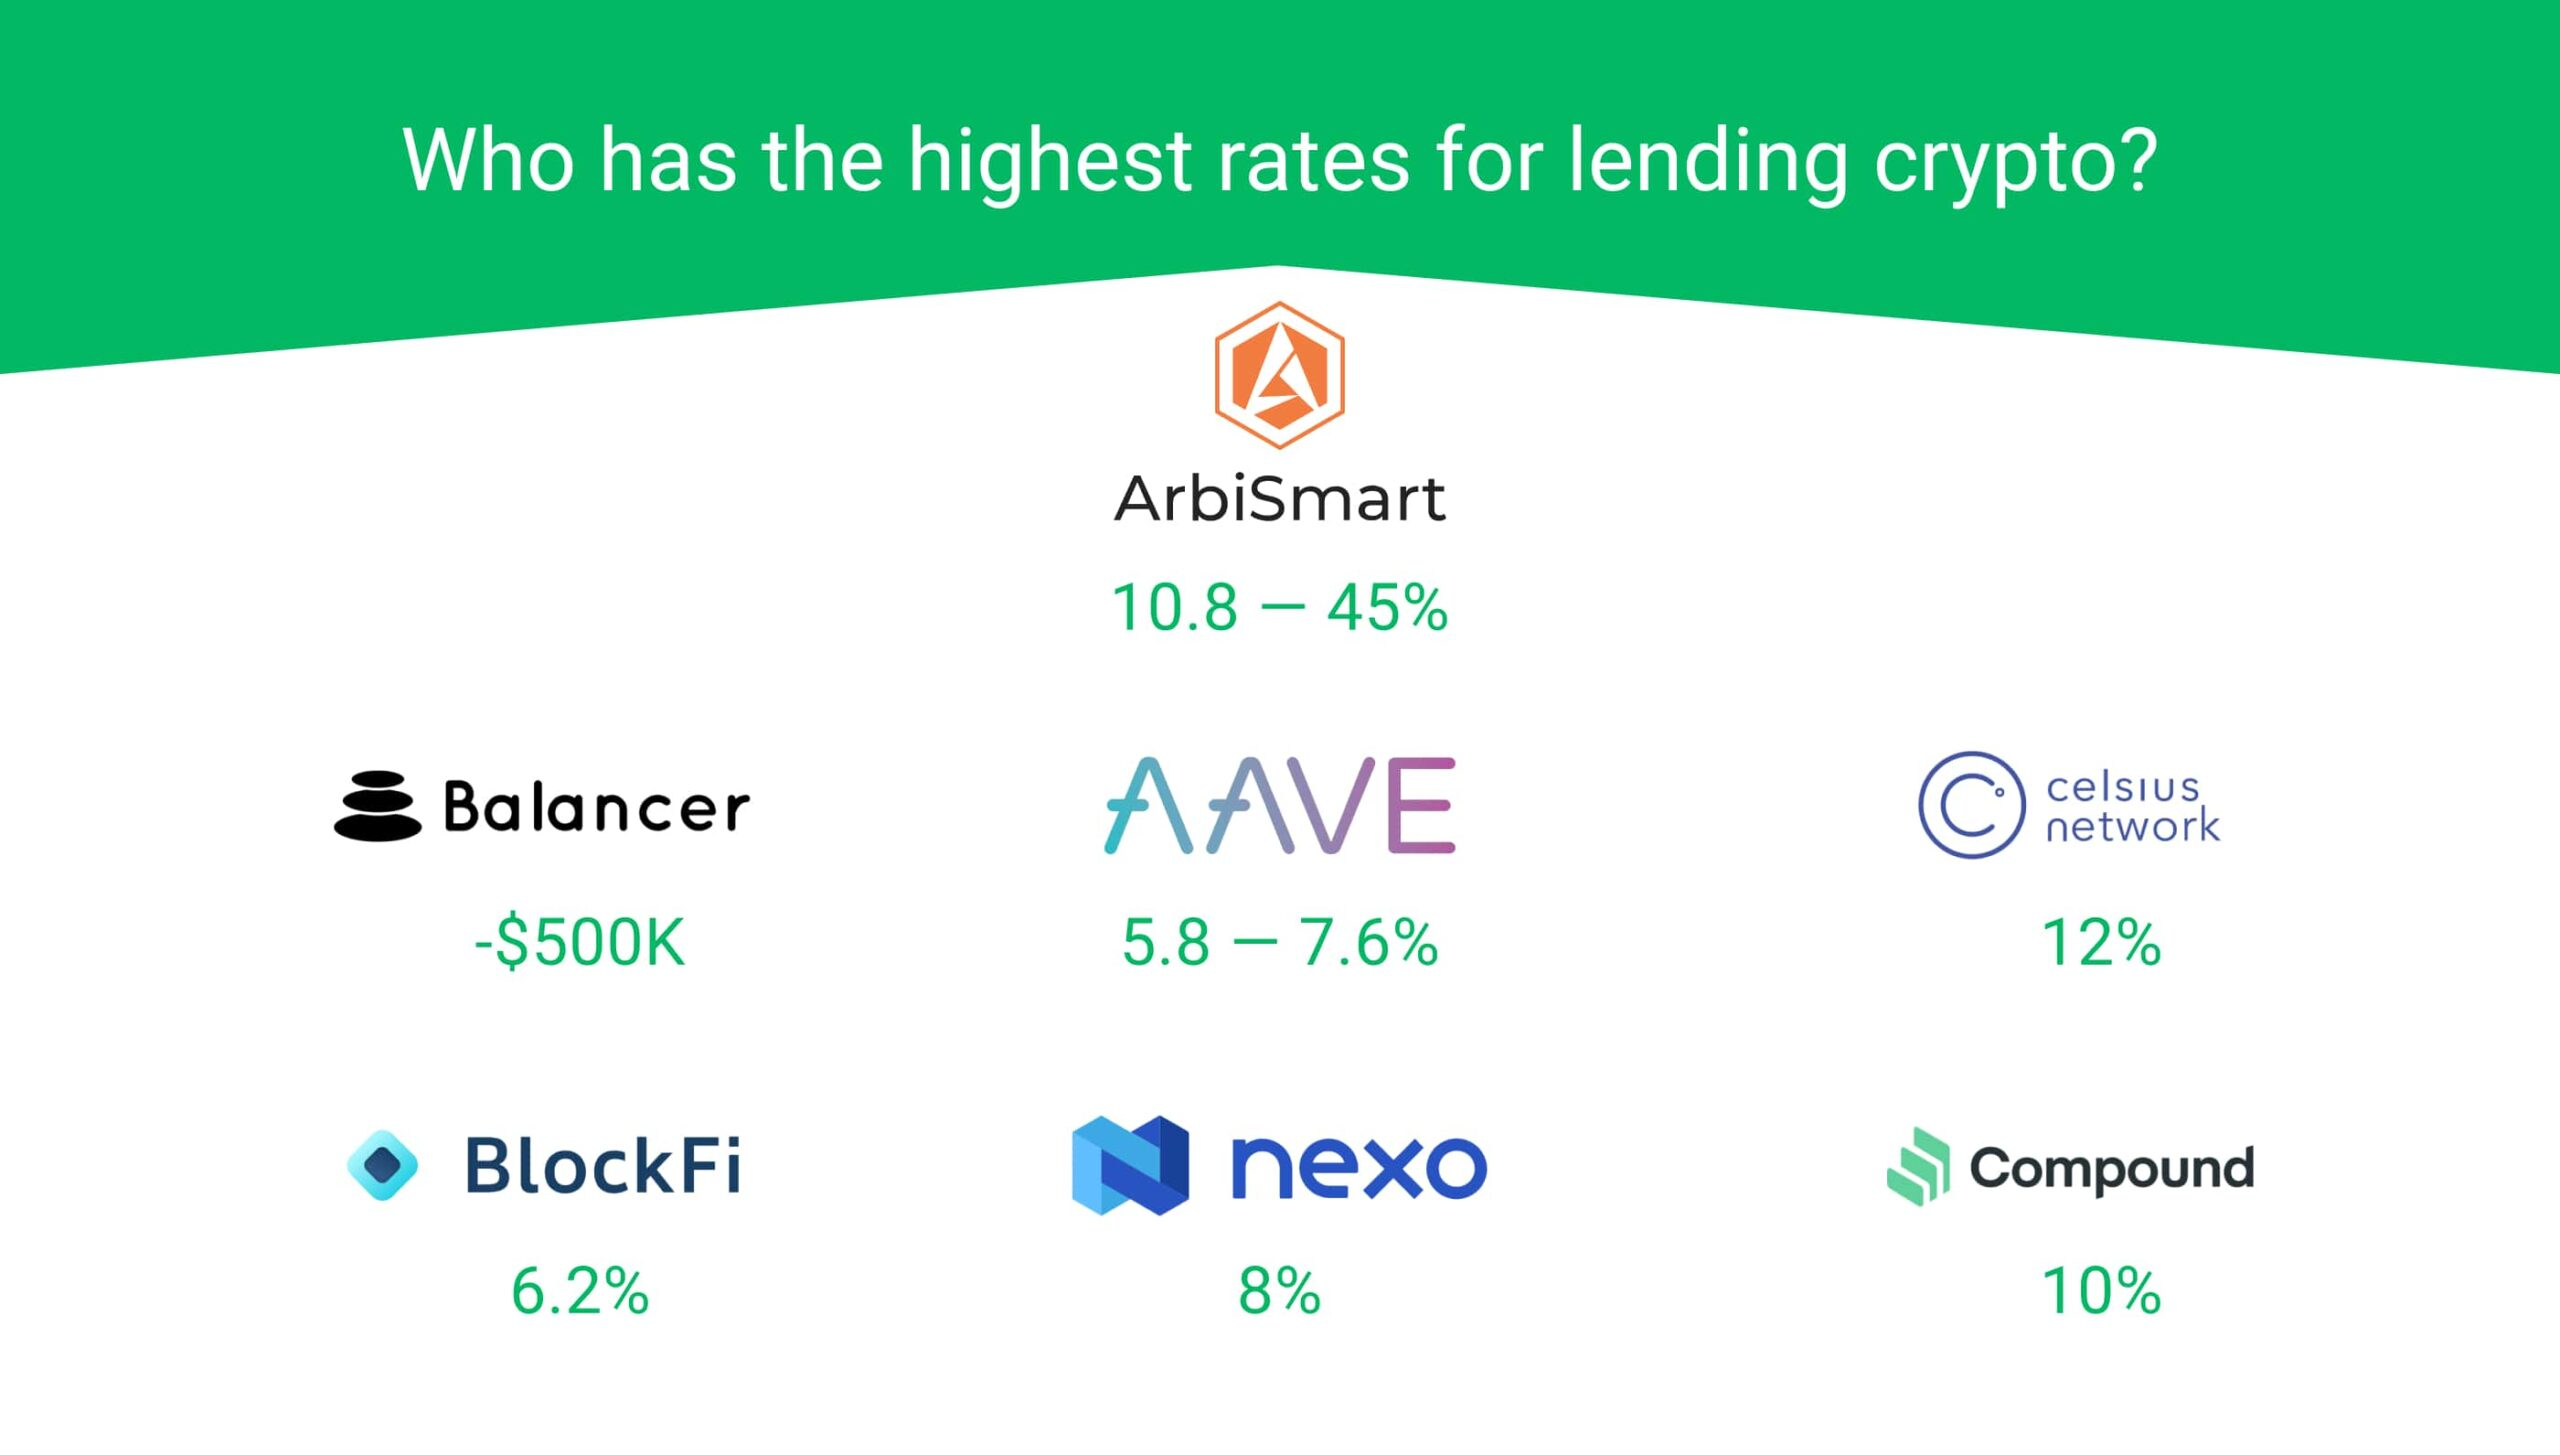 who has the highest rates for lending crypto